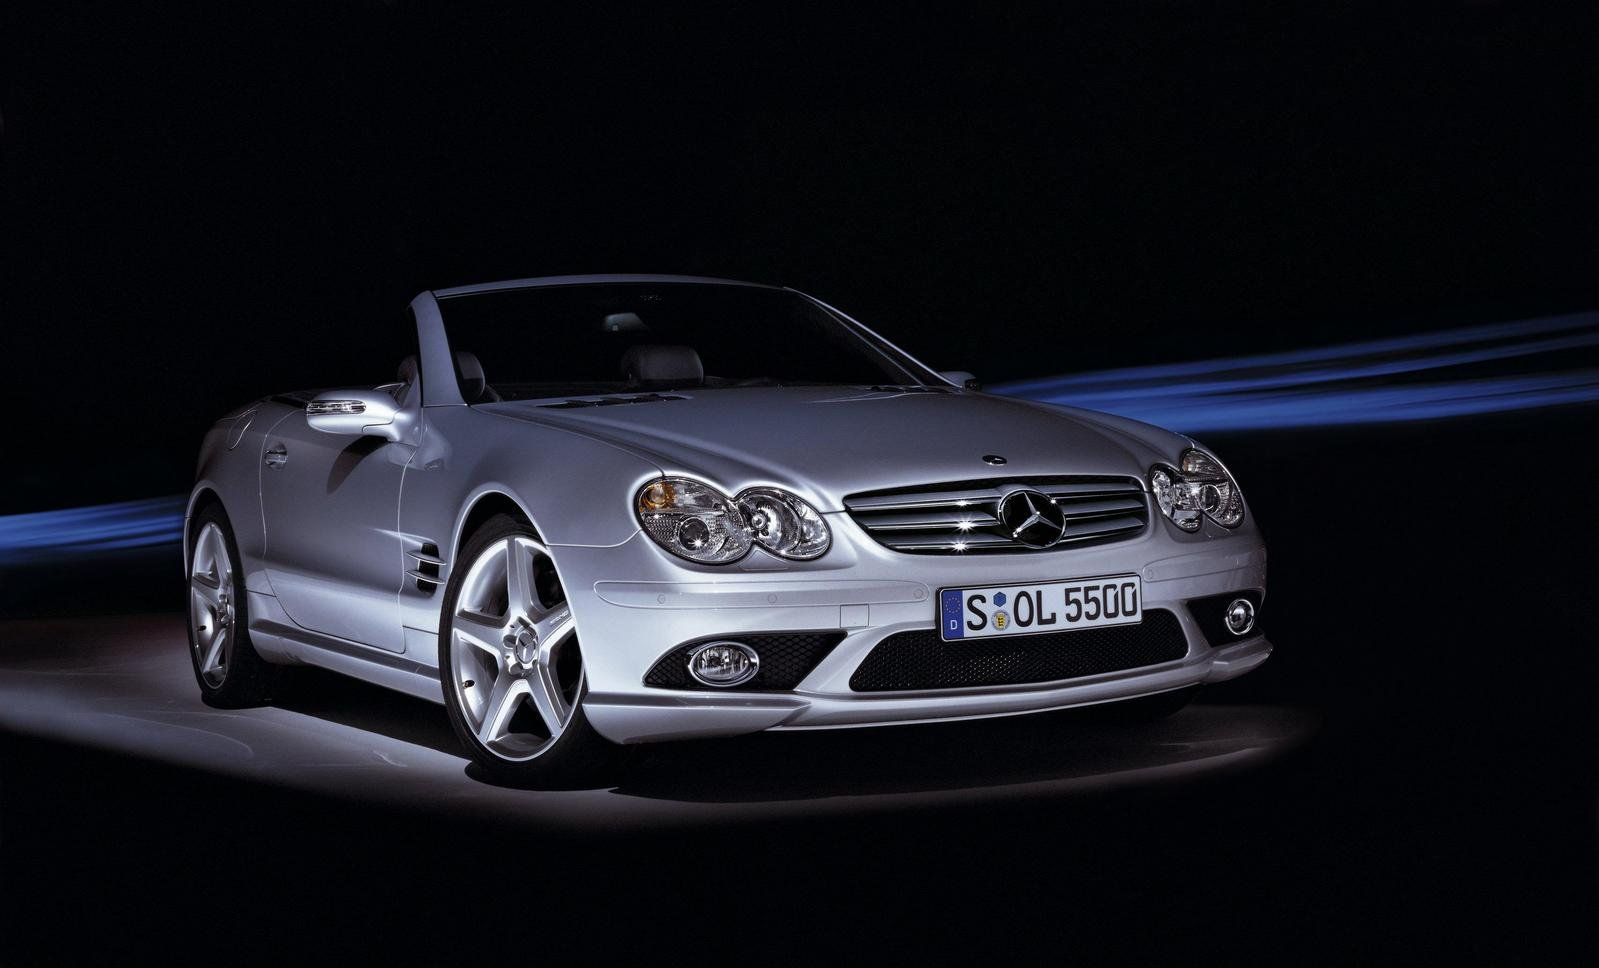 2007 mercedes sl class picture 42660 car review top for 2007 mercedes benz sl500